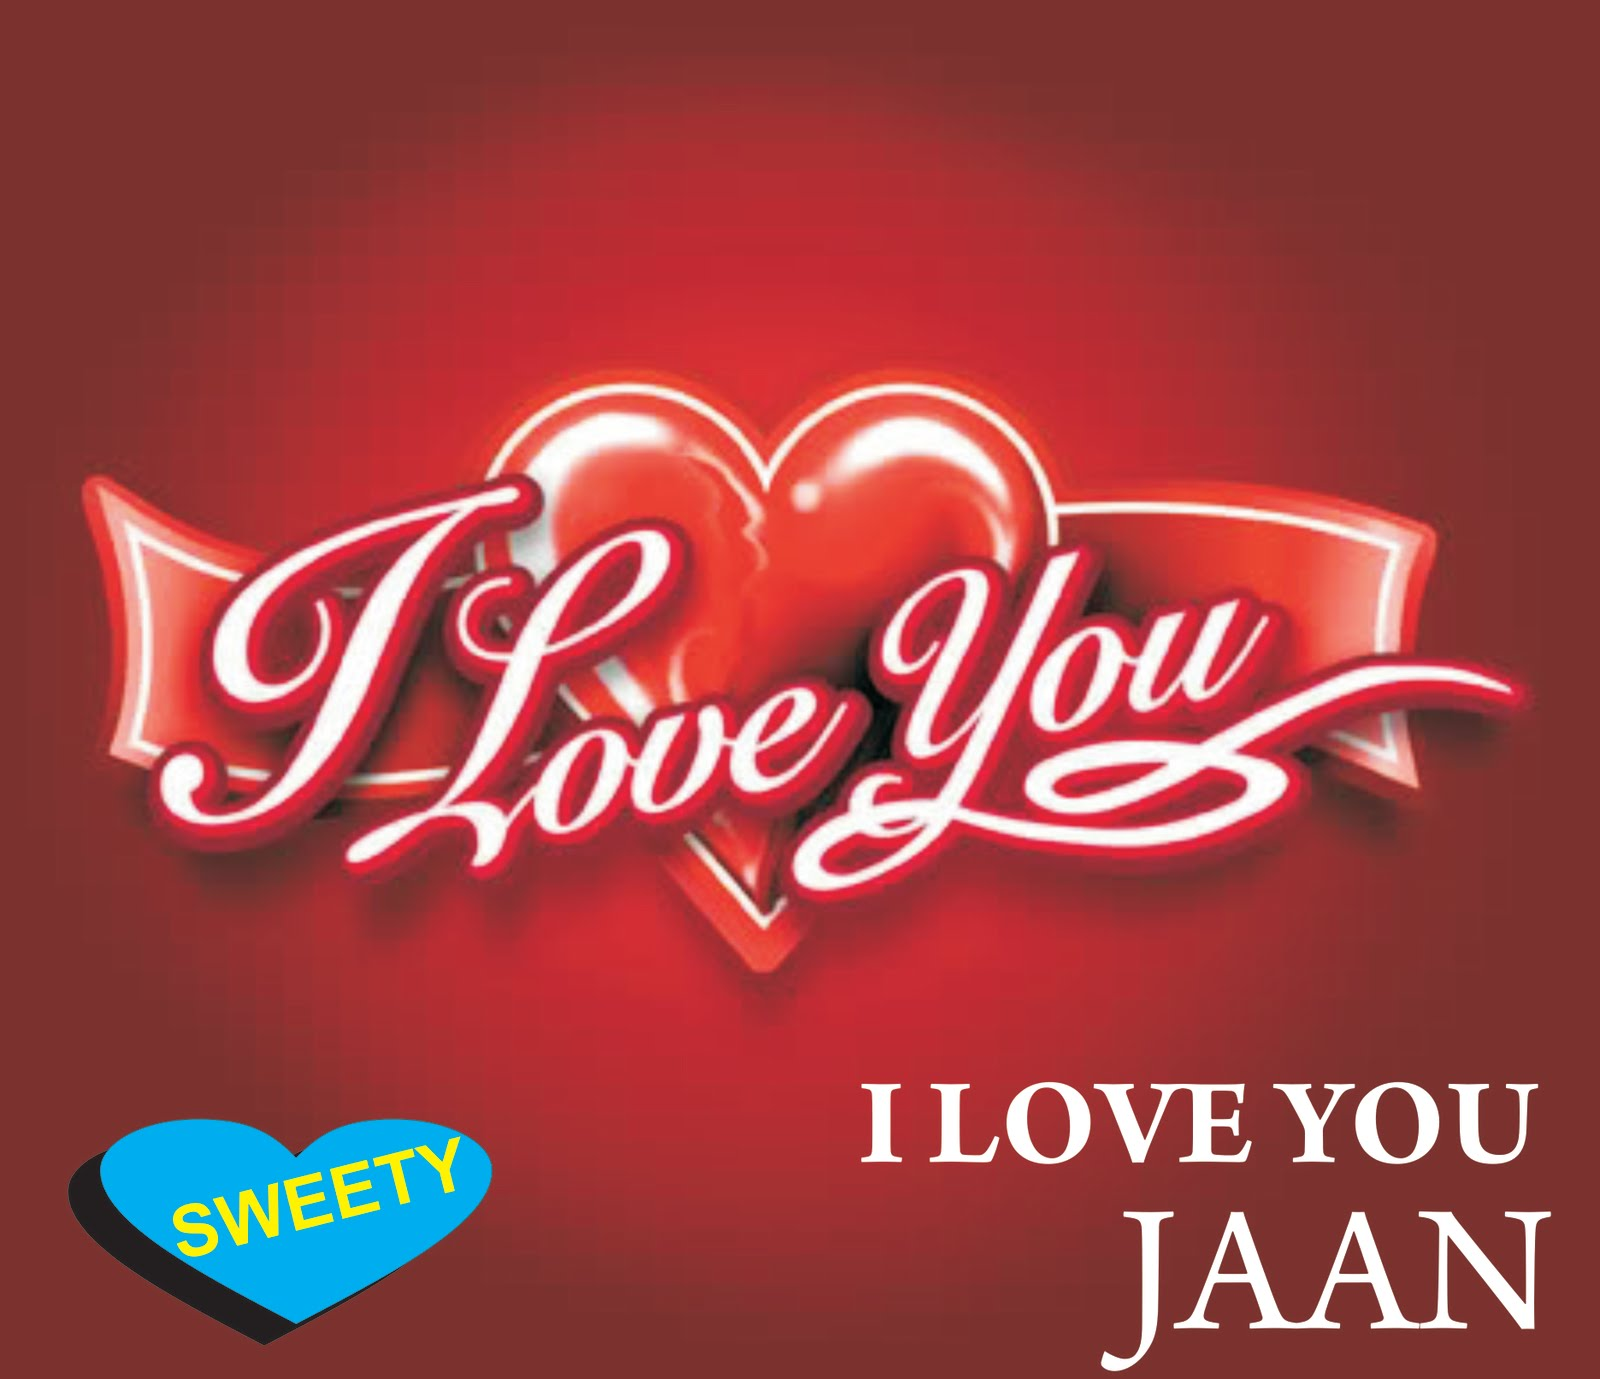 Love Wallpaper Jaan : I Love You Jaan Photo - impremedia.net